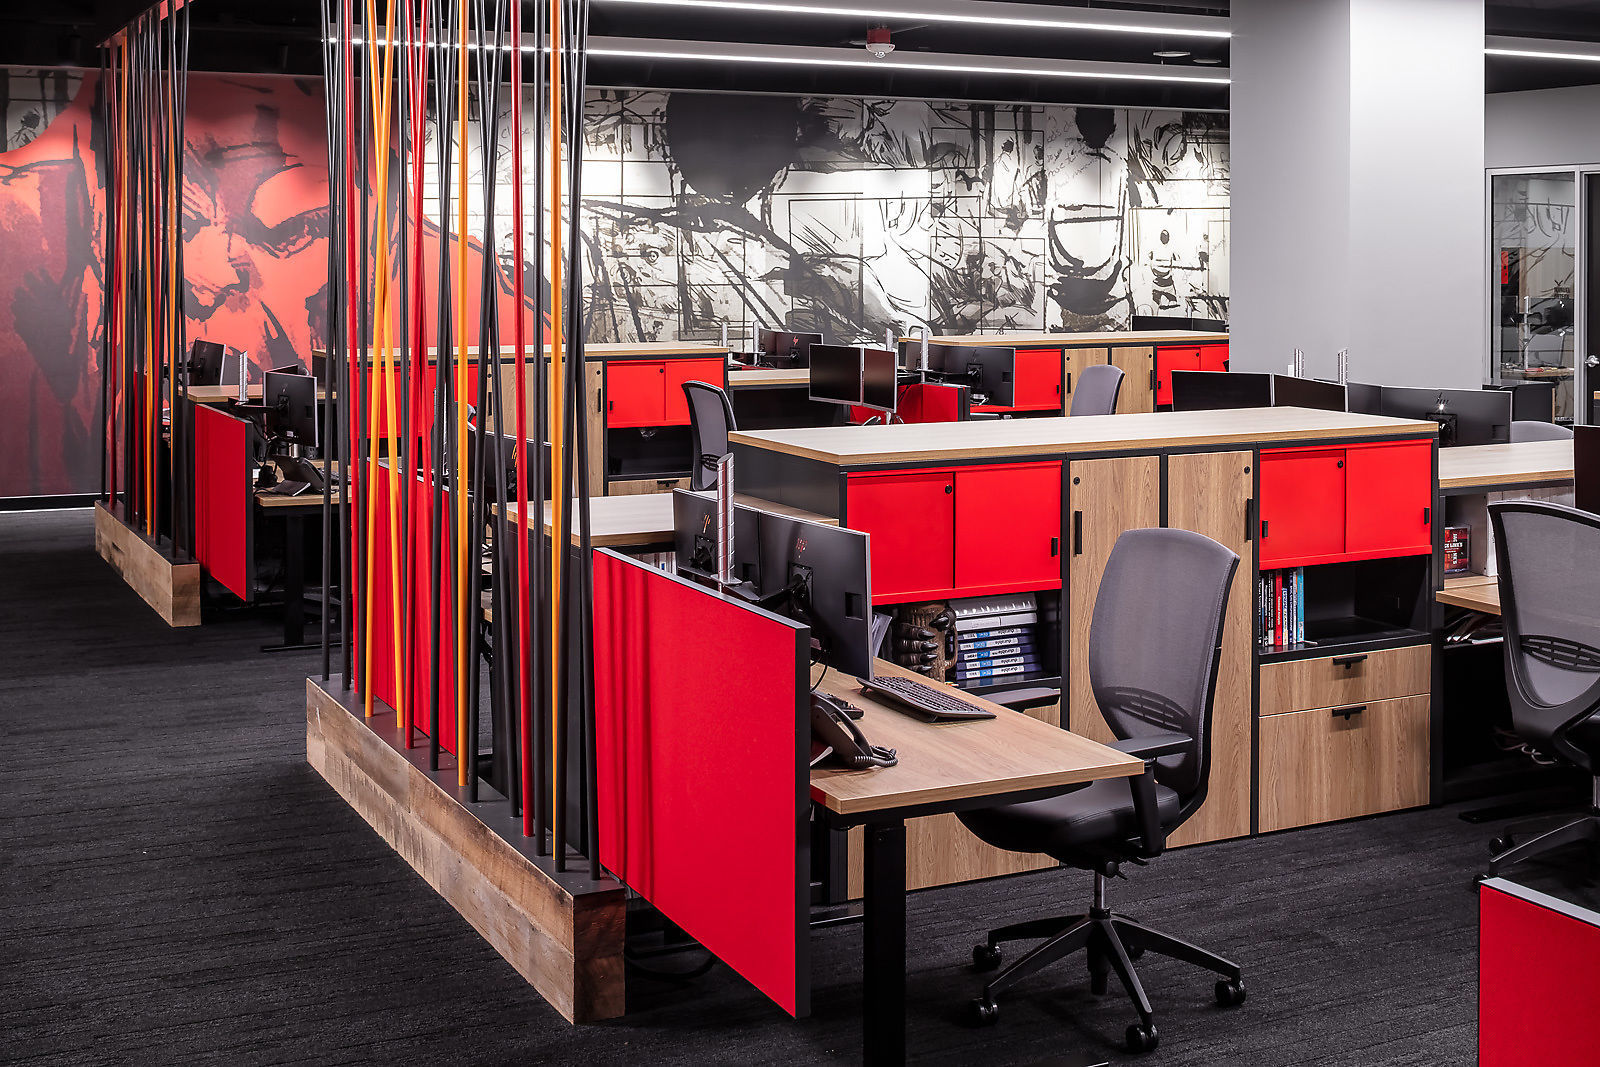 The open work environment offers plenty of collaboration spaces with soft seating options and branded conference rooms.